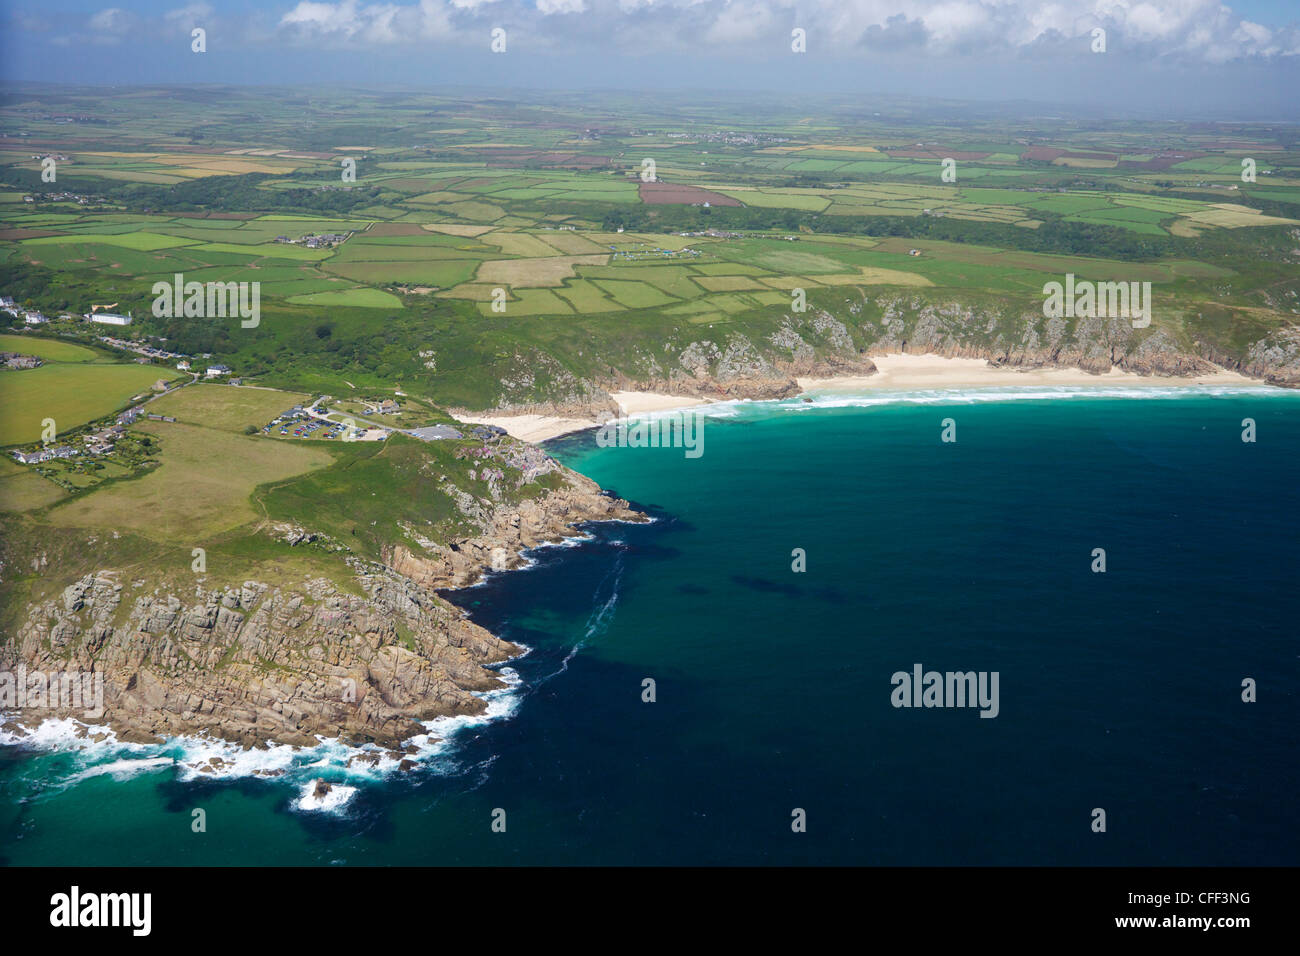 Aerial photo of Lands End Peninsula looking east to the Minnack Theatre, West Penwith, Cornwall, England, UK - Stock Image